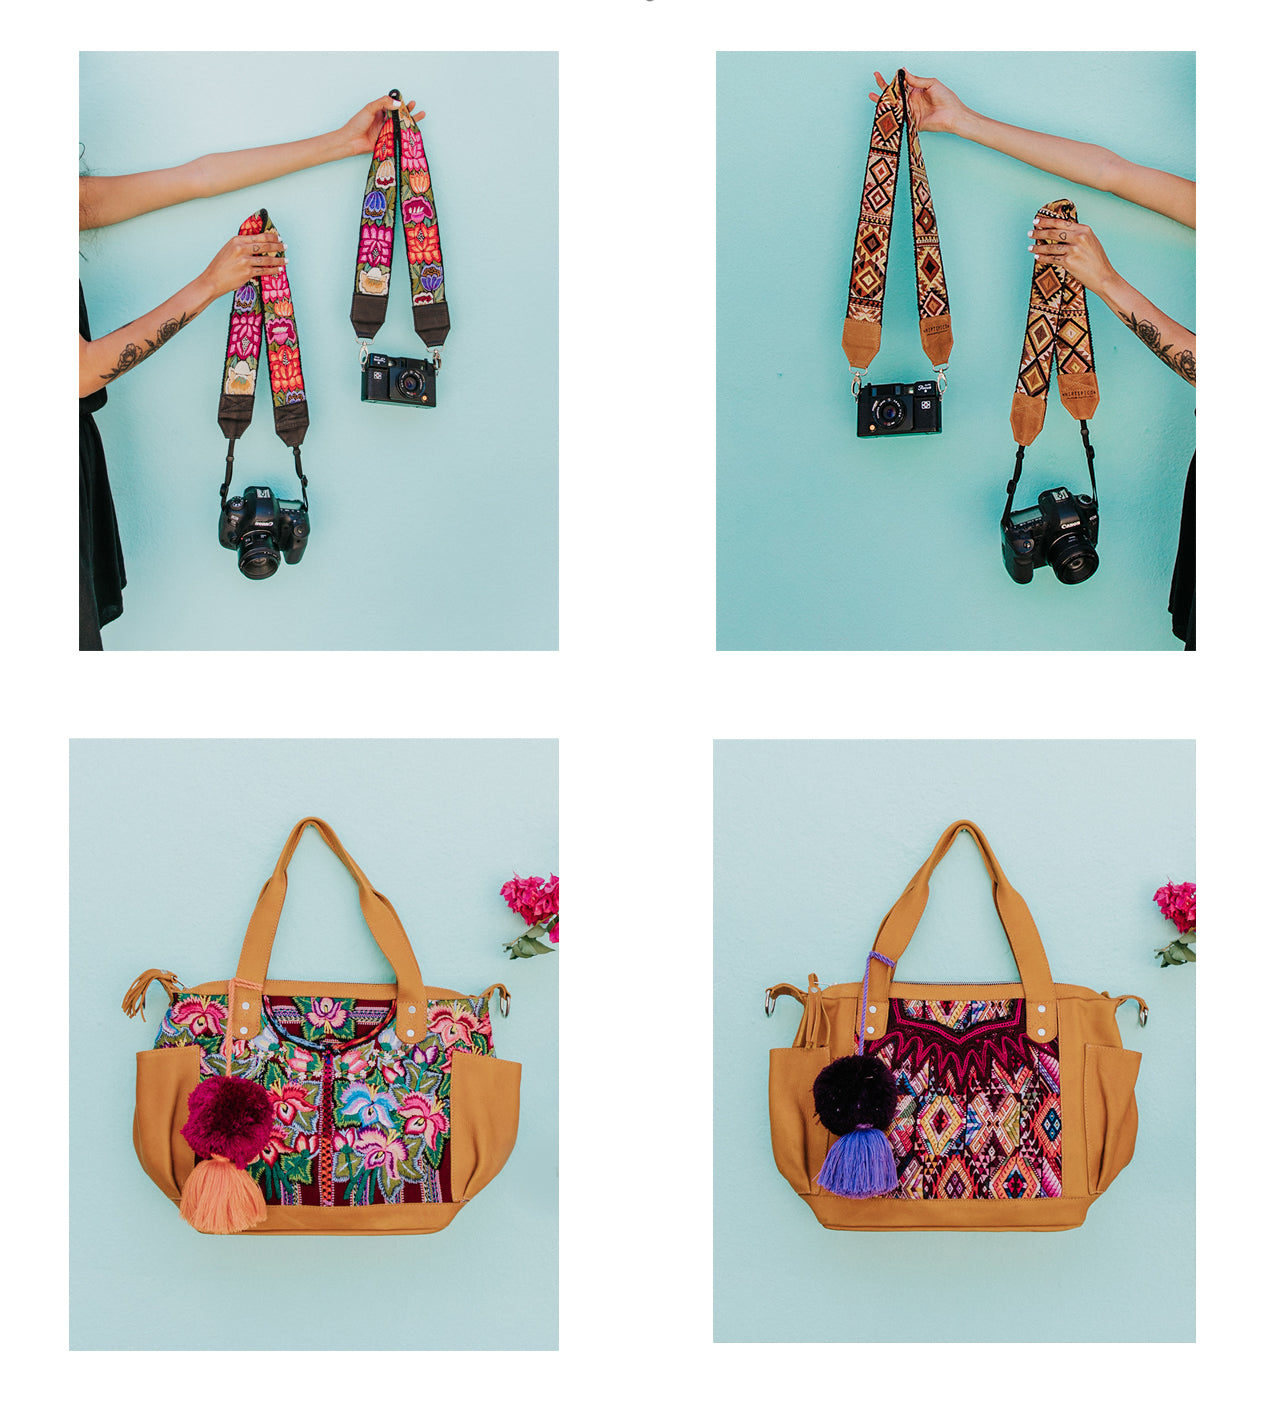 Hiptipico Build Your Own Custom Huipil Bag and Camera Strap